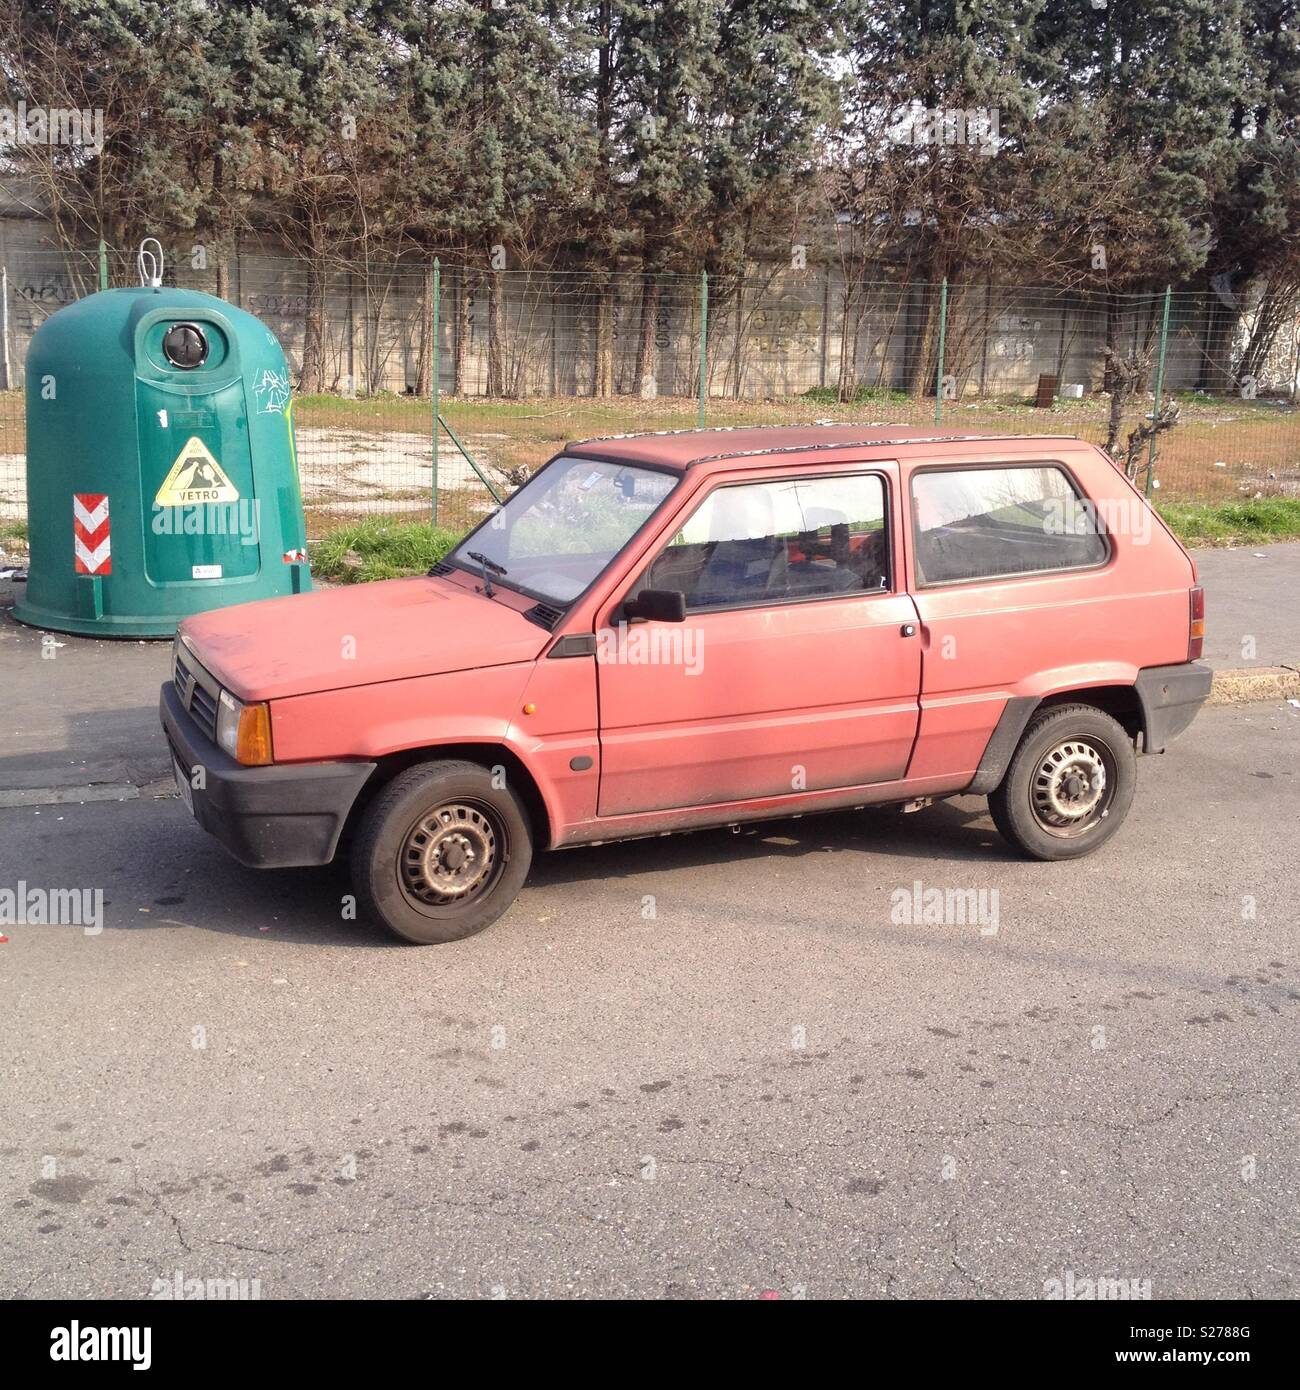 Fiat Panda High Resolution Stock Photography And Images Alamy